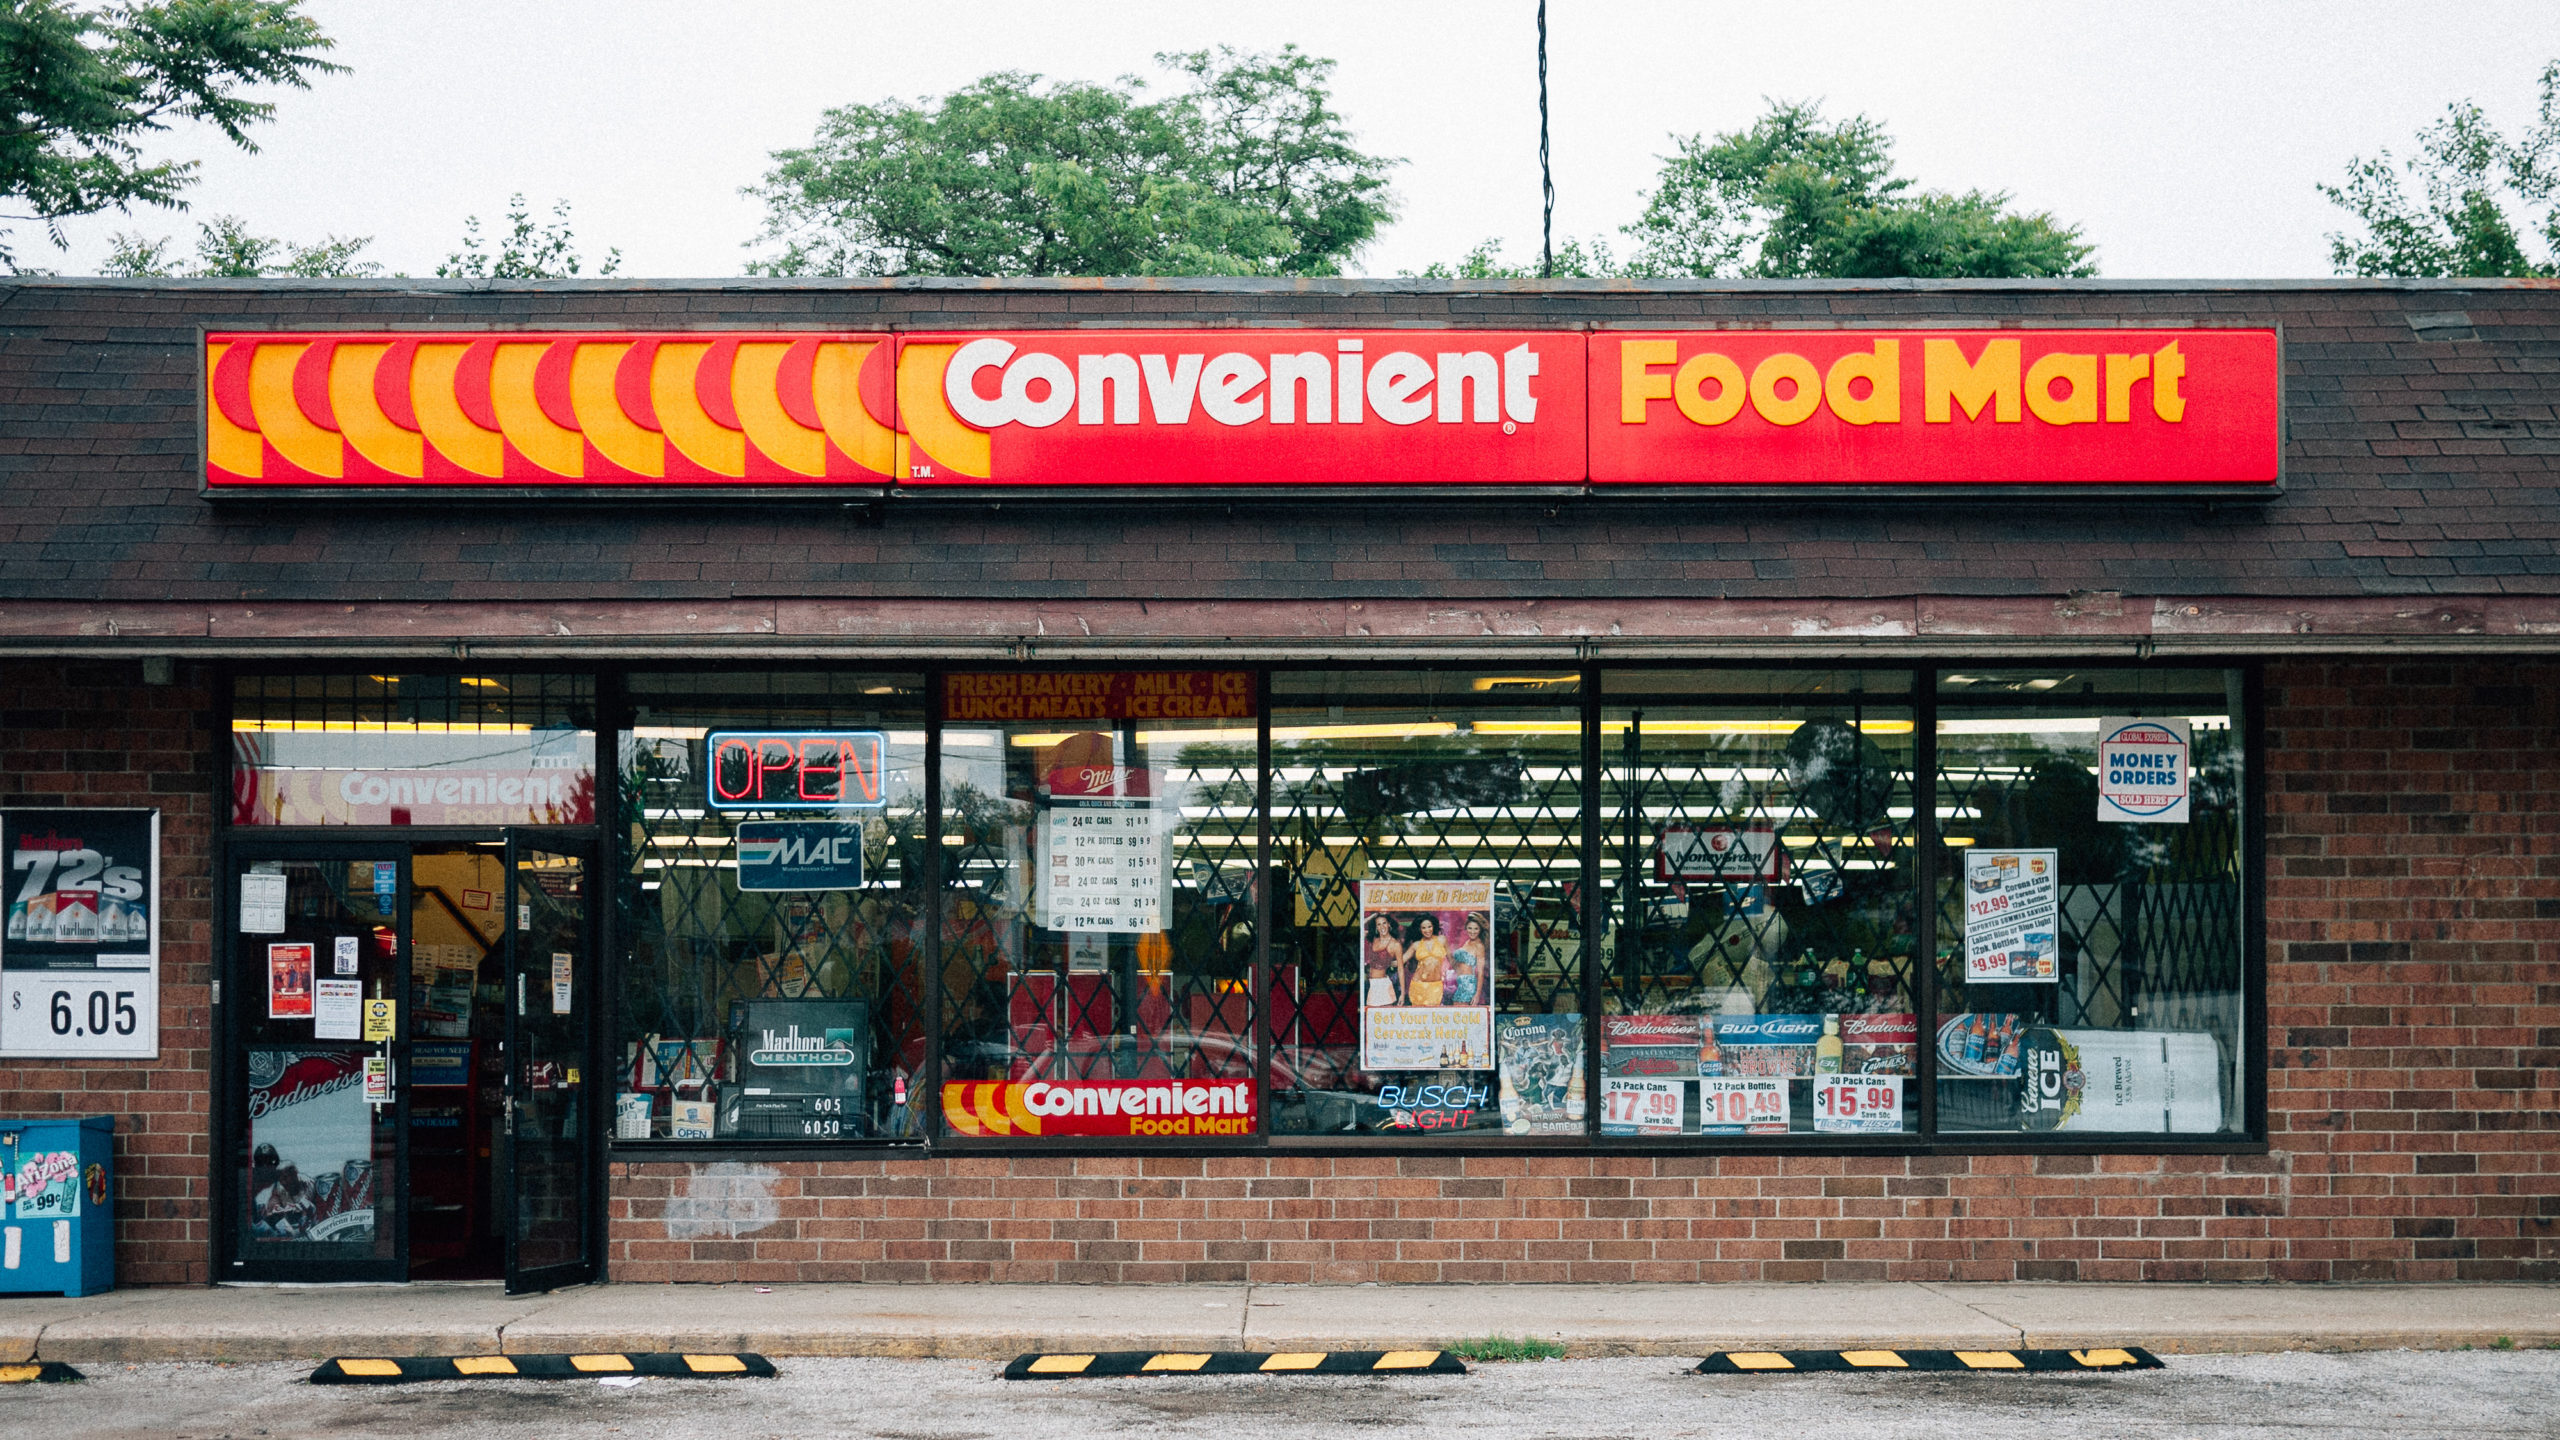 A convenience store in Cleveland Ohio